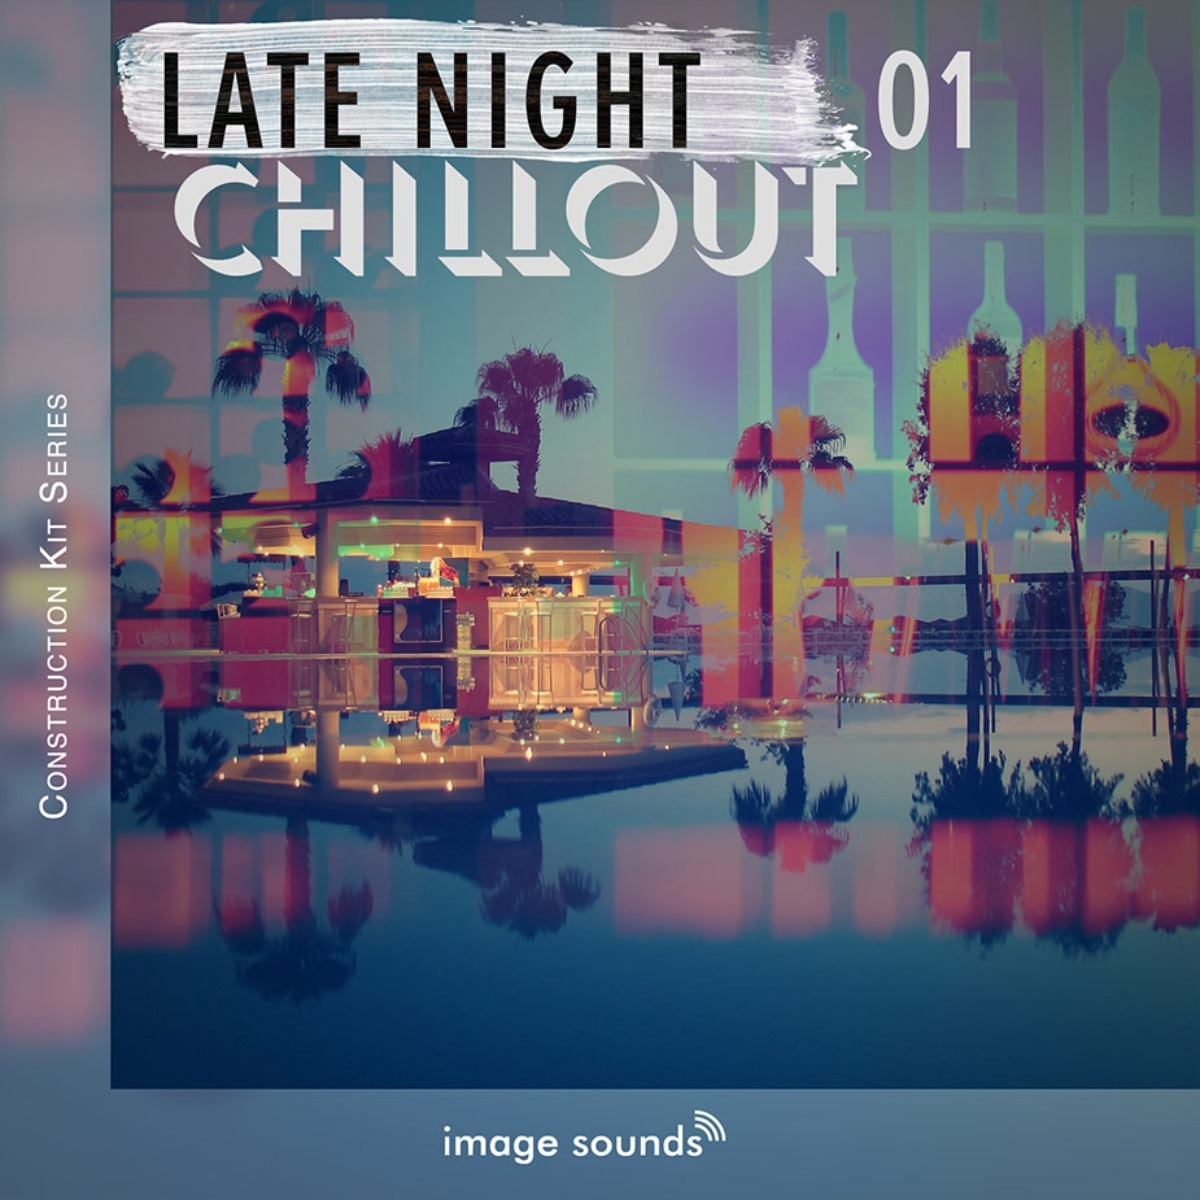 Late Night Chillout 1